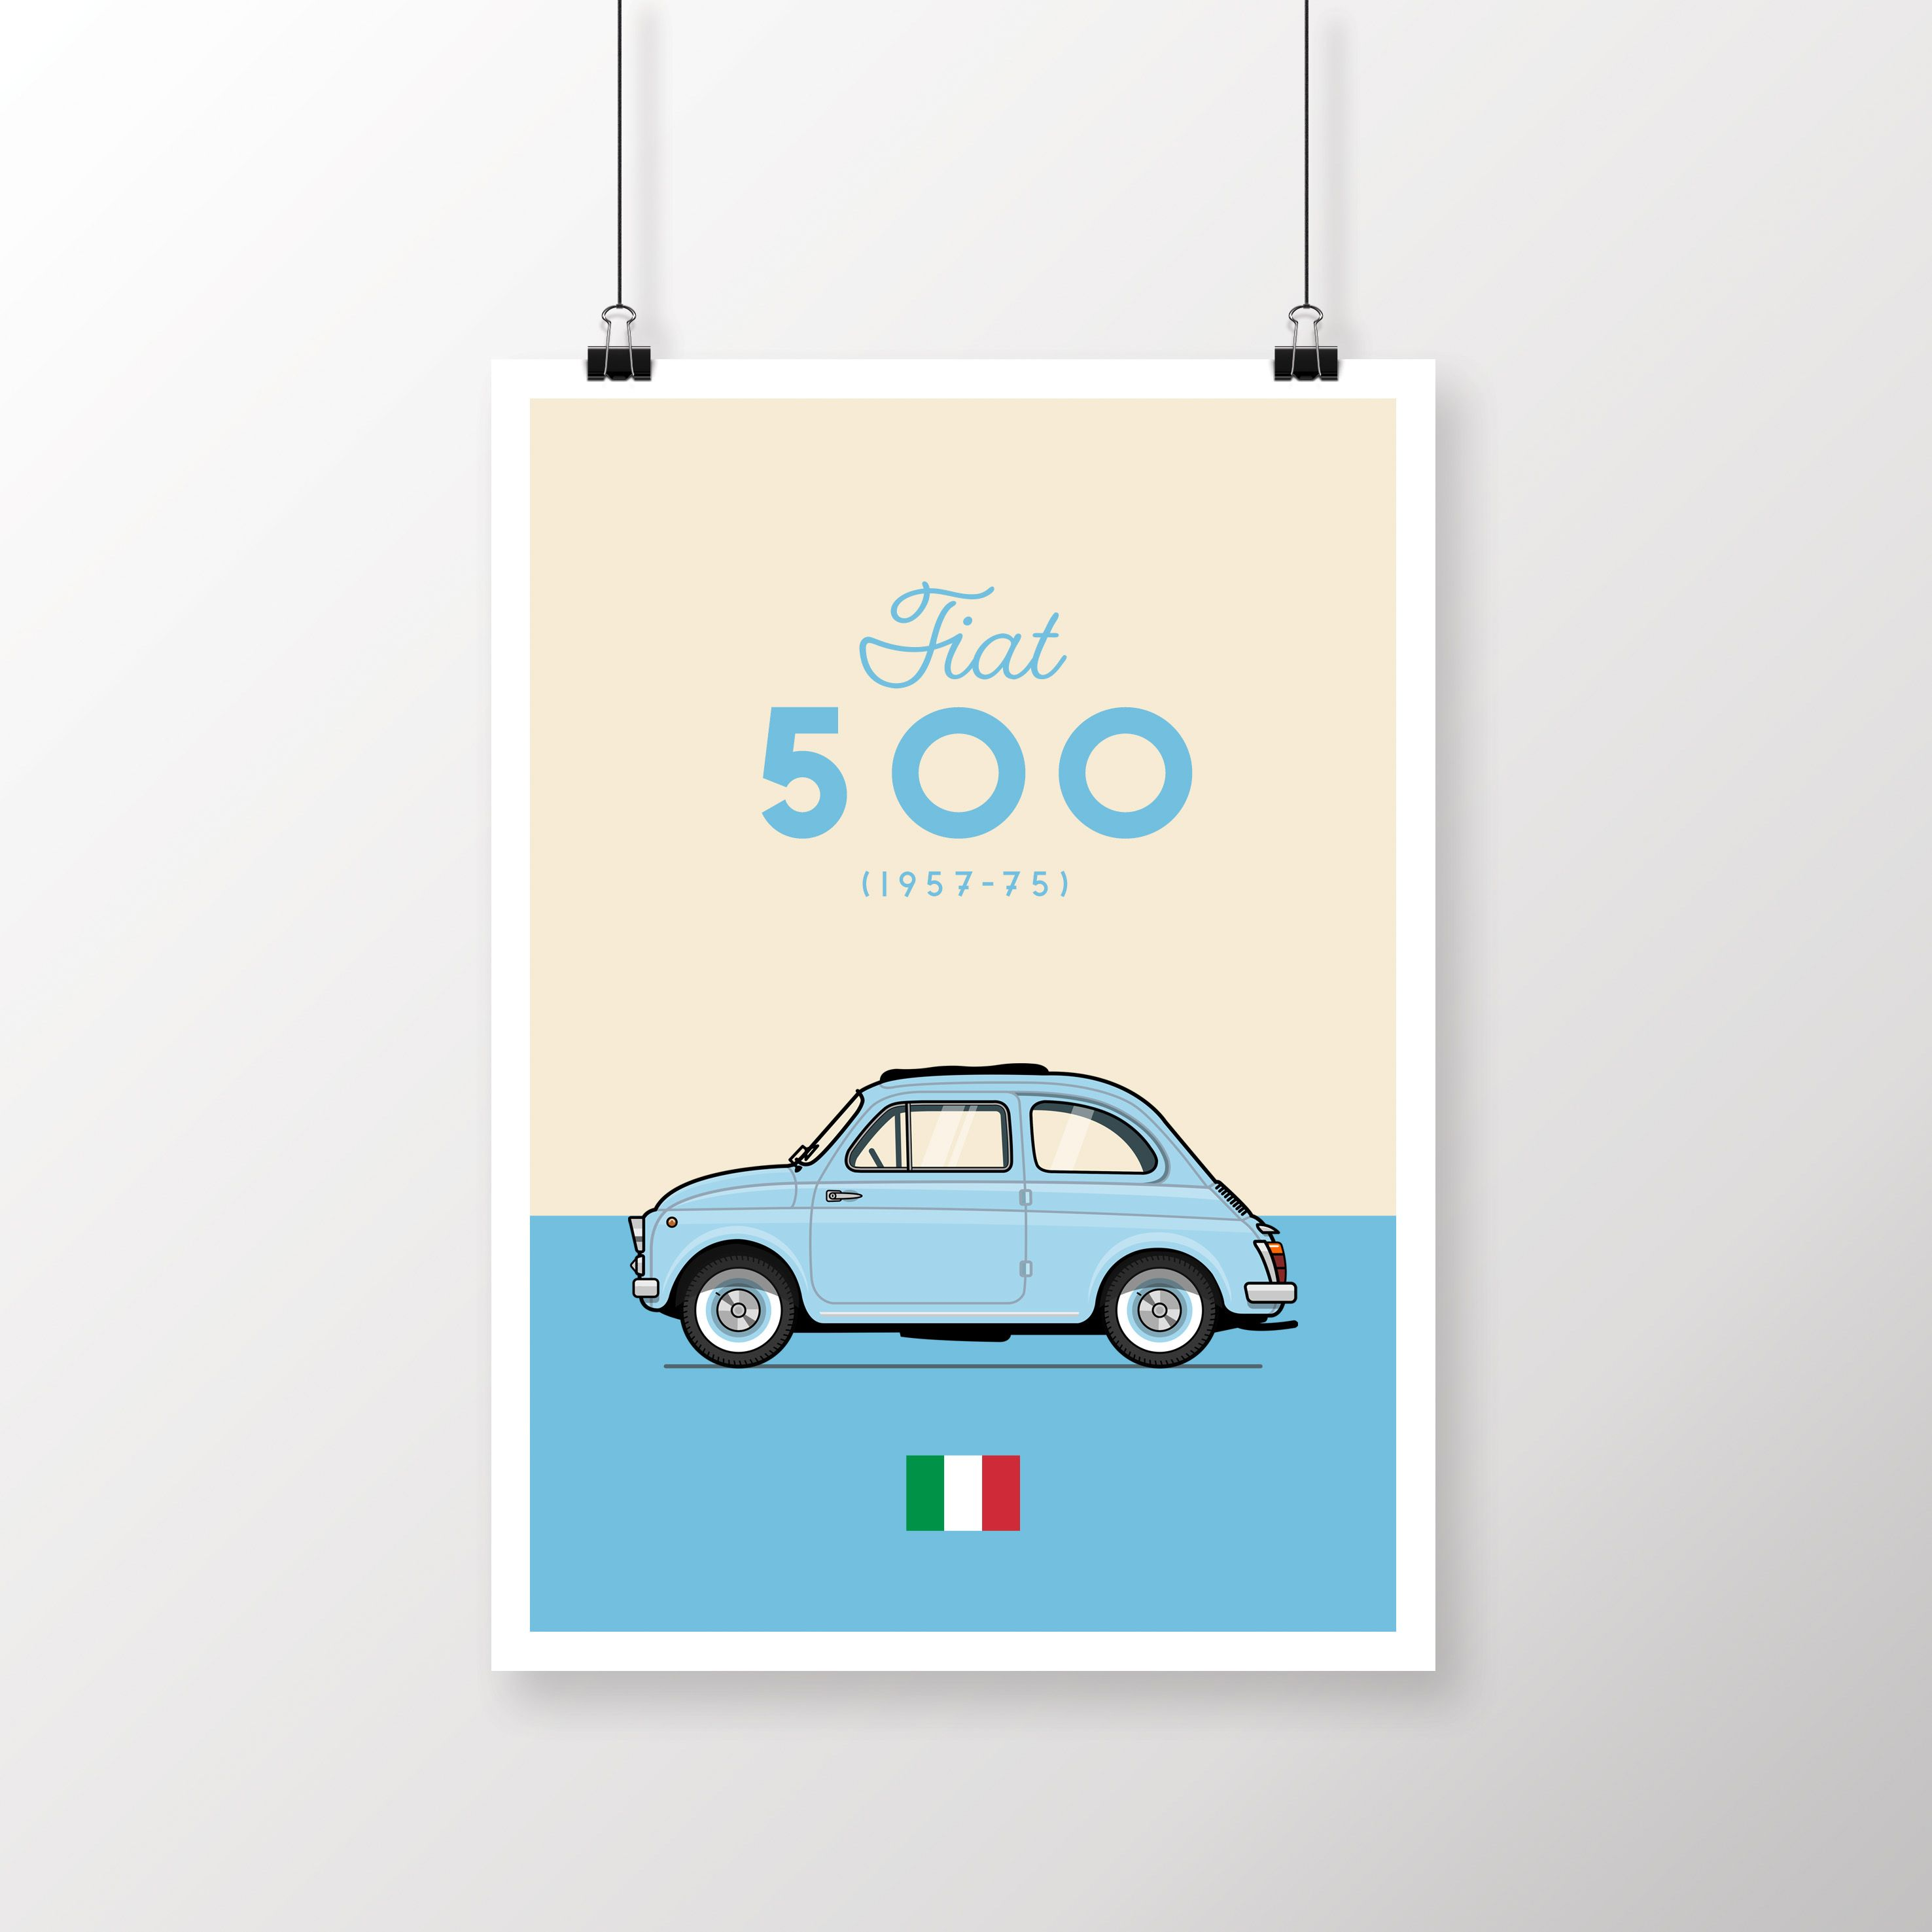 Fiat 500 Classic Car Vintage Poster Giclee Print – Blue